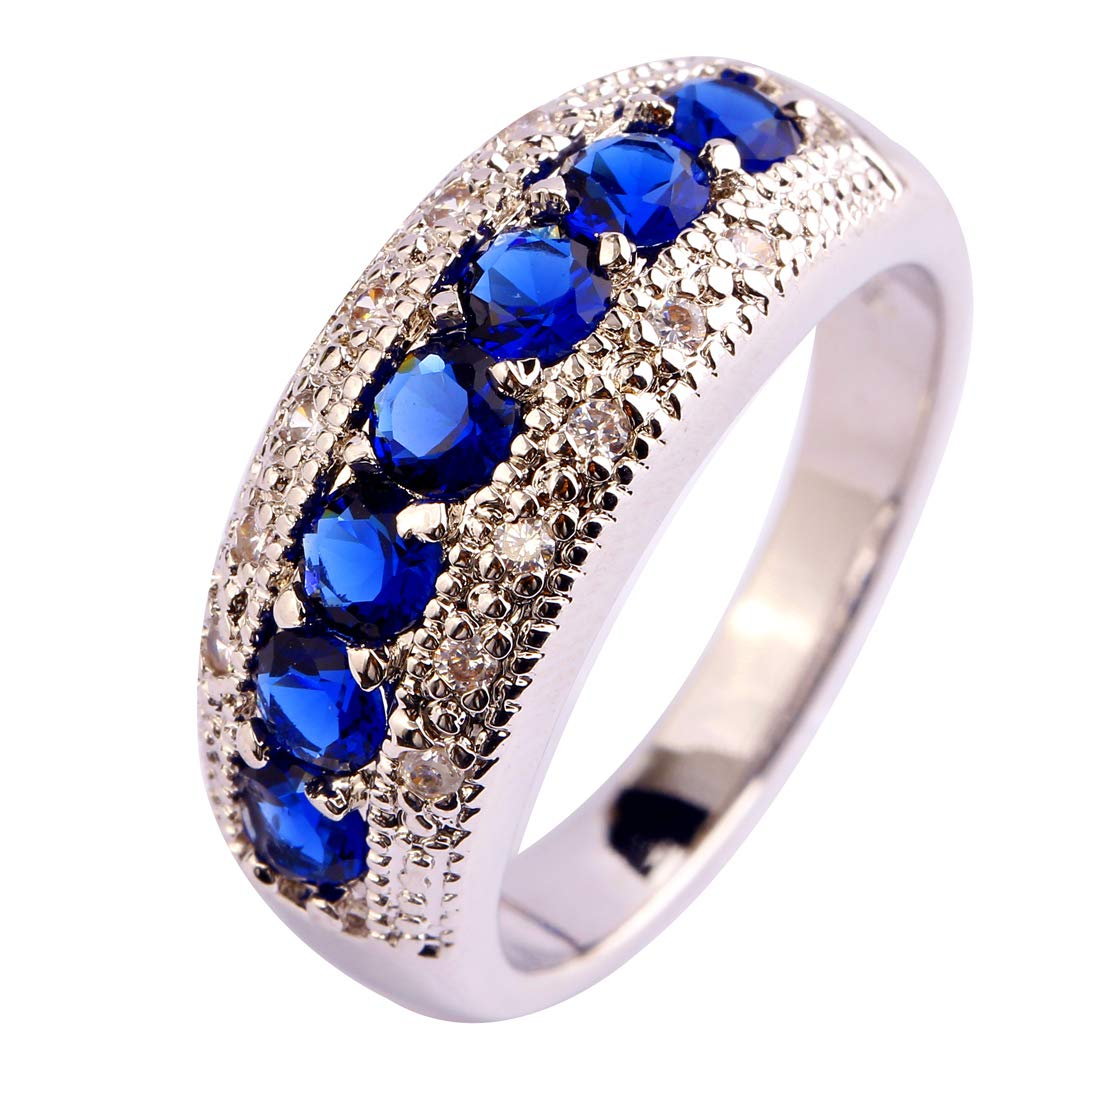 Narica 925 Sterling Silver Plated Sapphire Quartz Ladies Eternity Love Cocktail Ring Wedding Band CZ Sizes 8